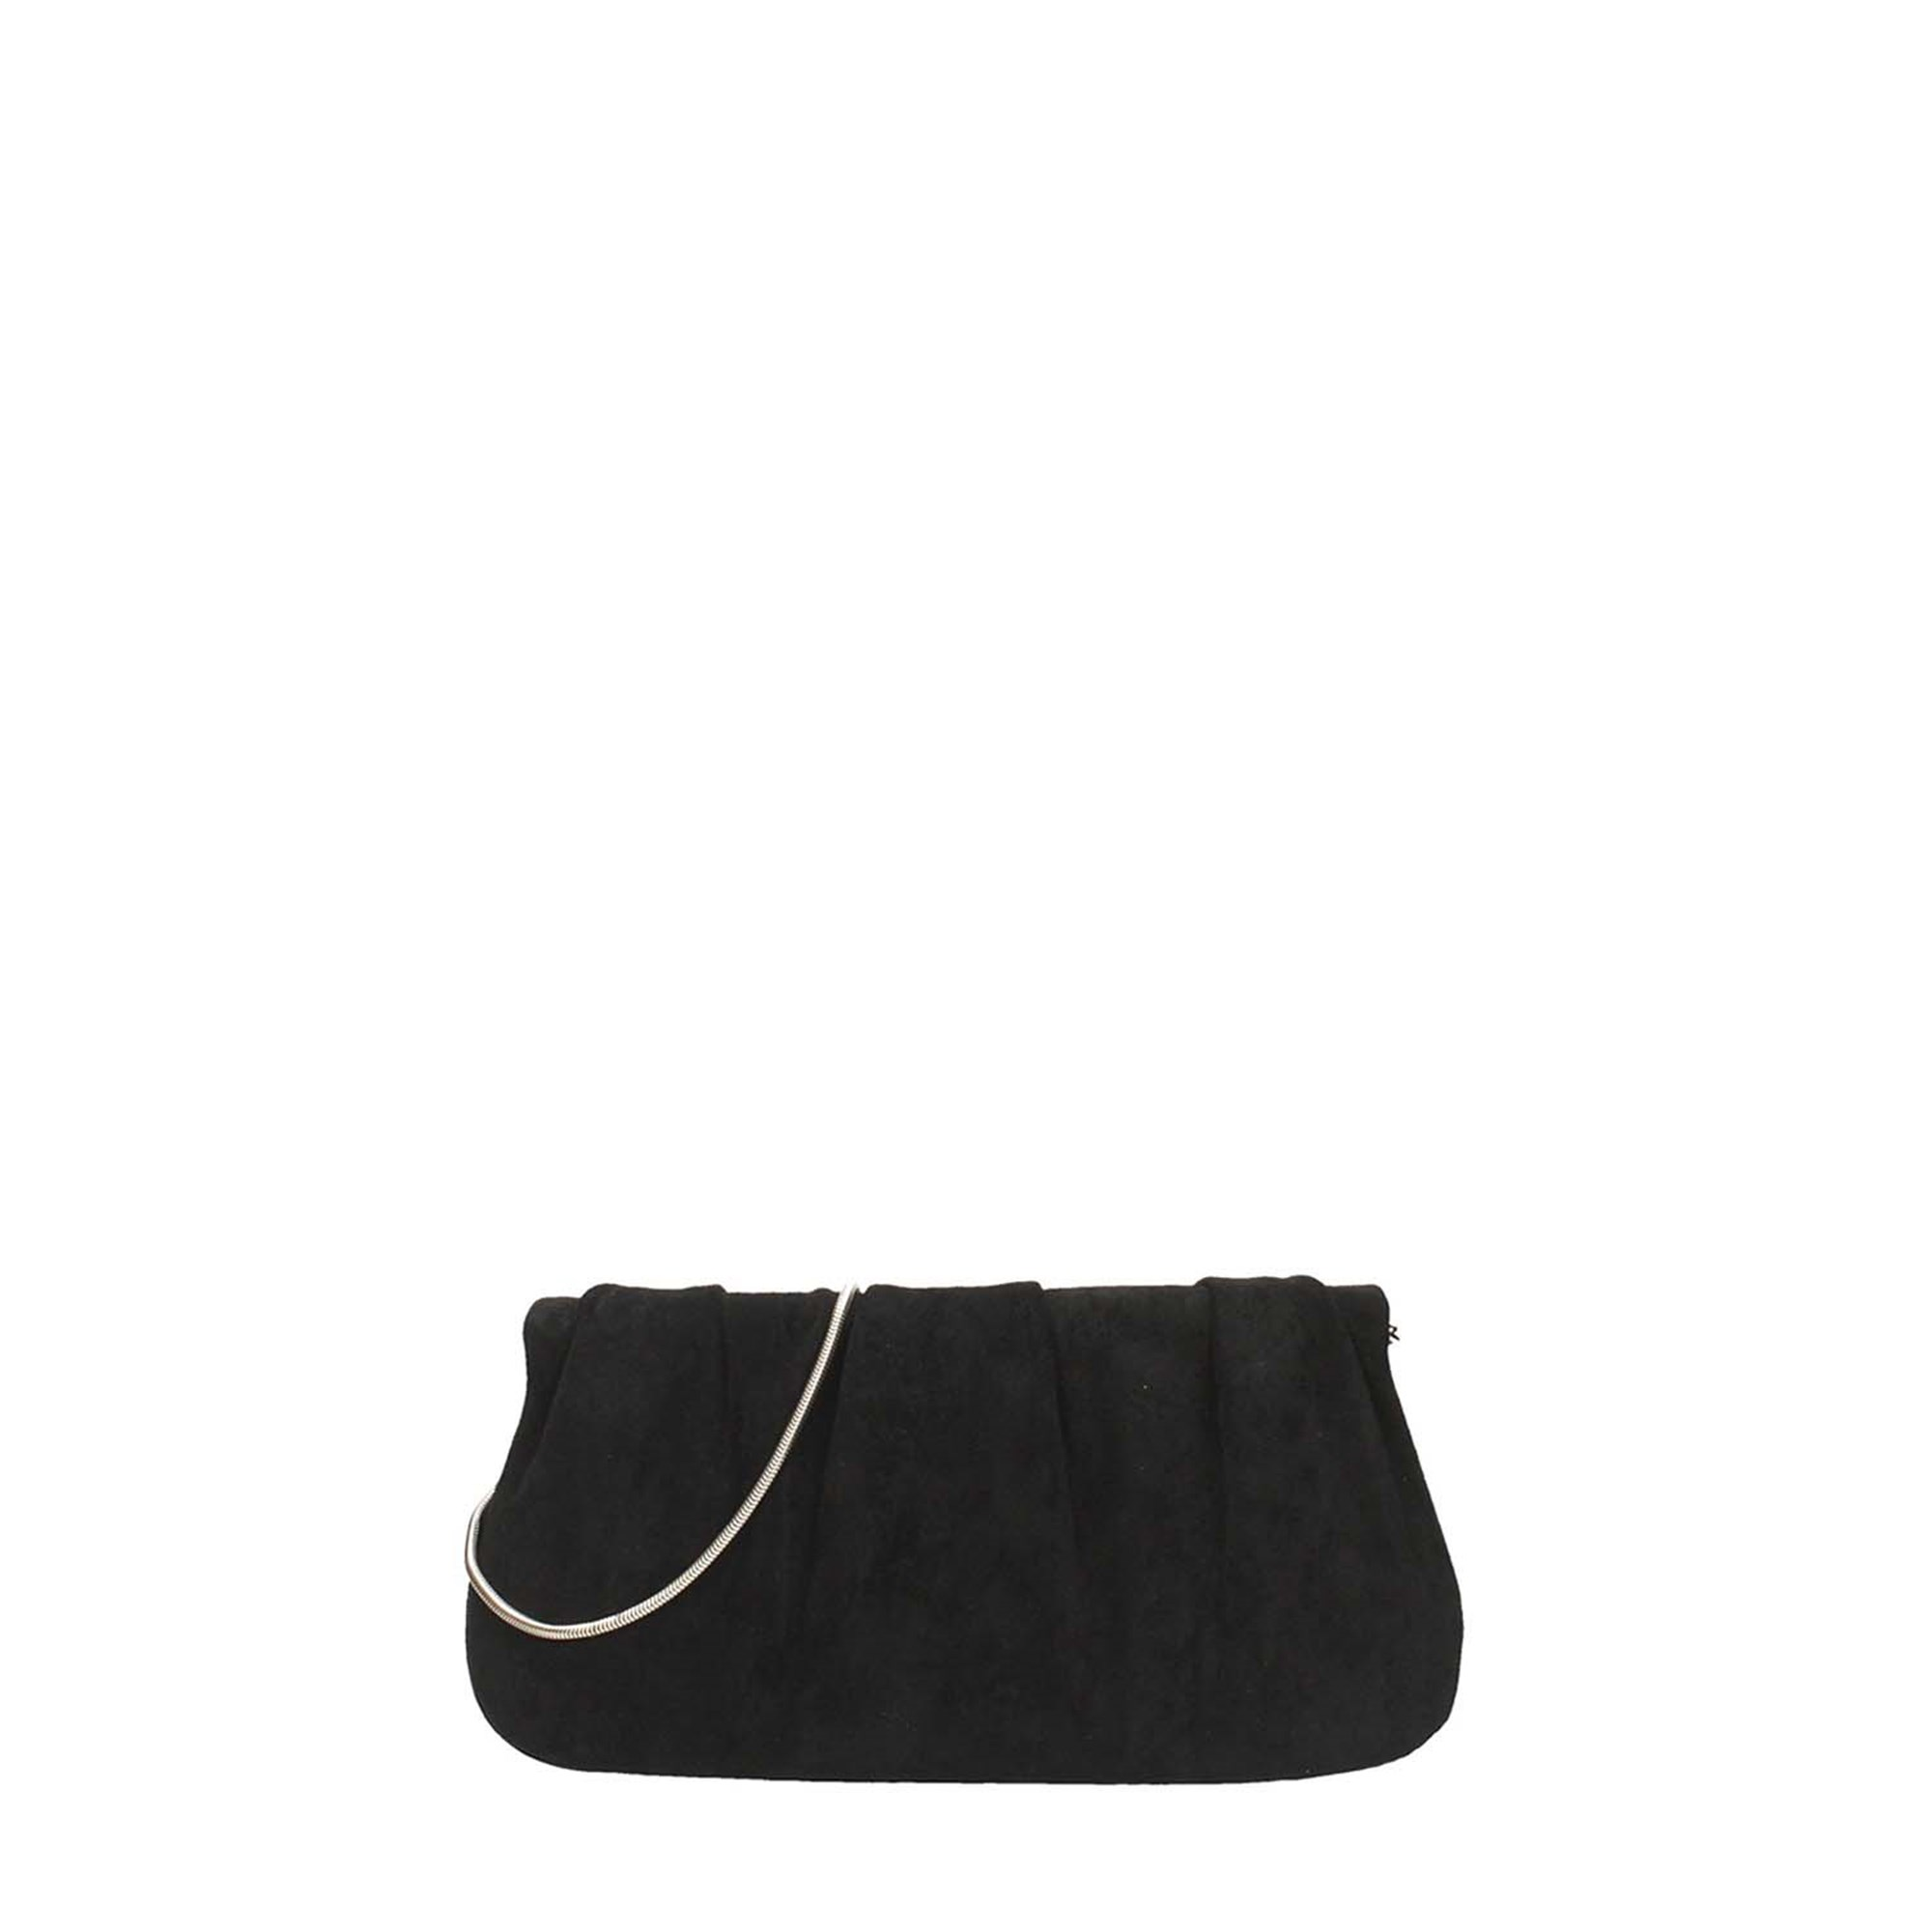 Tata Italia Accessories Woman Bags 19P397A